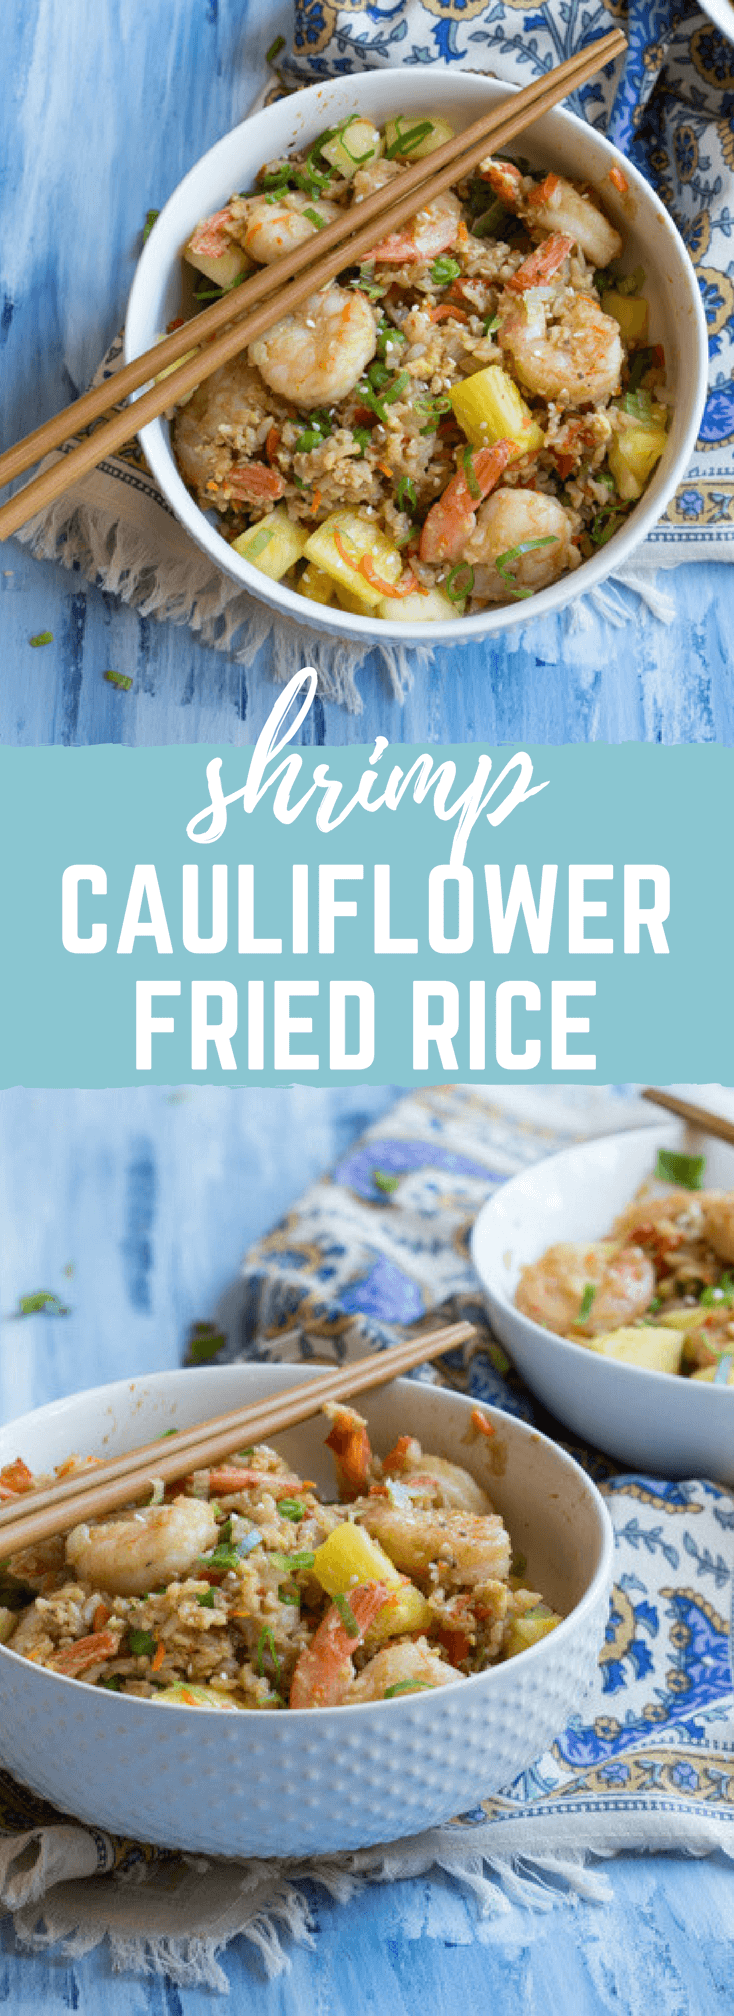 """This Shrimp Cauliflower Rried Rice is ready in just 25 minutes! This is the perfect dish for a quick, need it in a hurry Monday through Friday meal or just as a healthier alternative to the standard cozy """"take out and a movie"""" meal."""